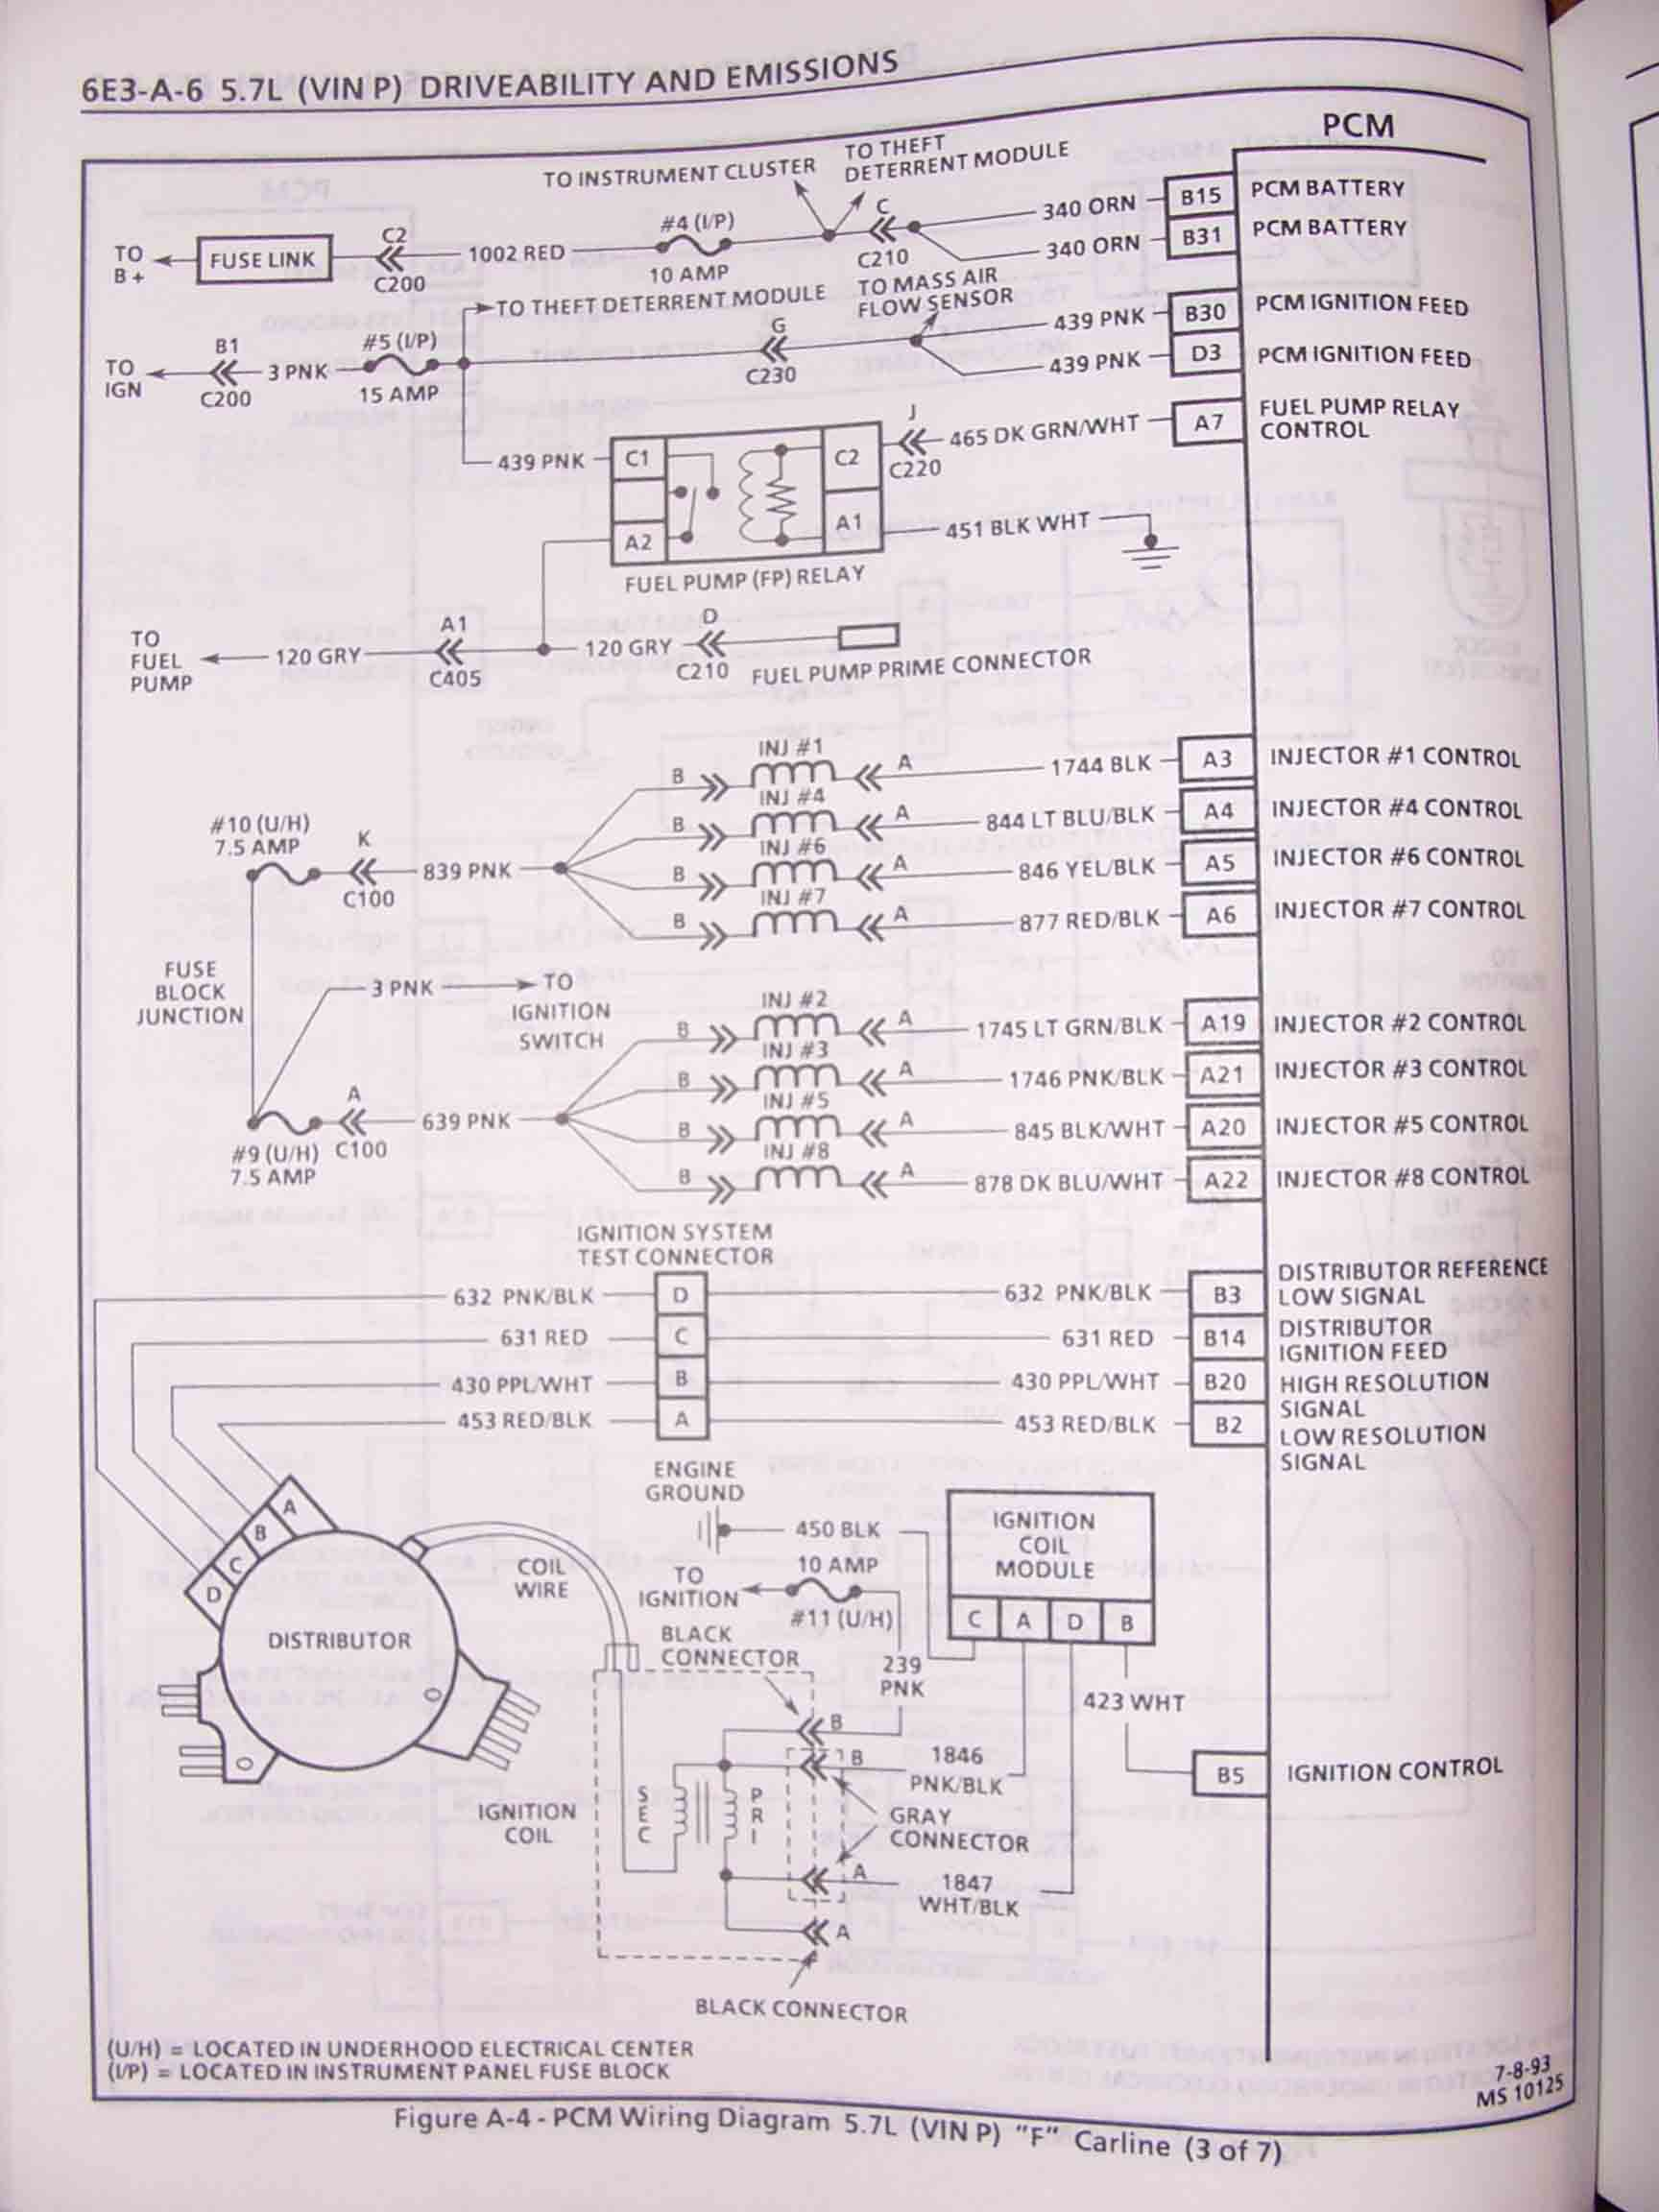 1971 Corvette Fuse Box Diagram Trusted Wiring C5 95 Circuit Symbols U2022 Panel